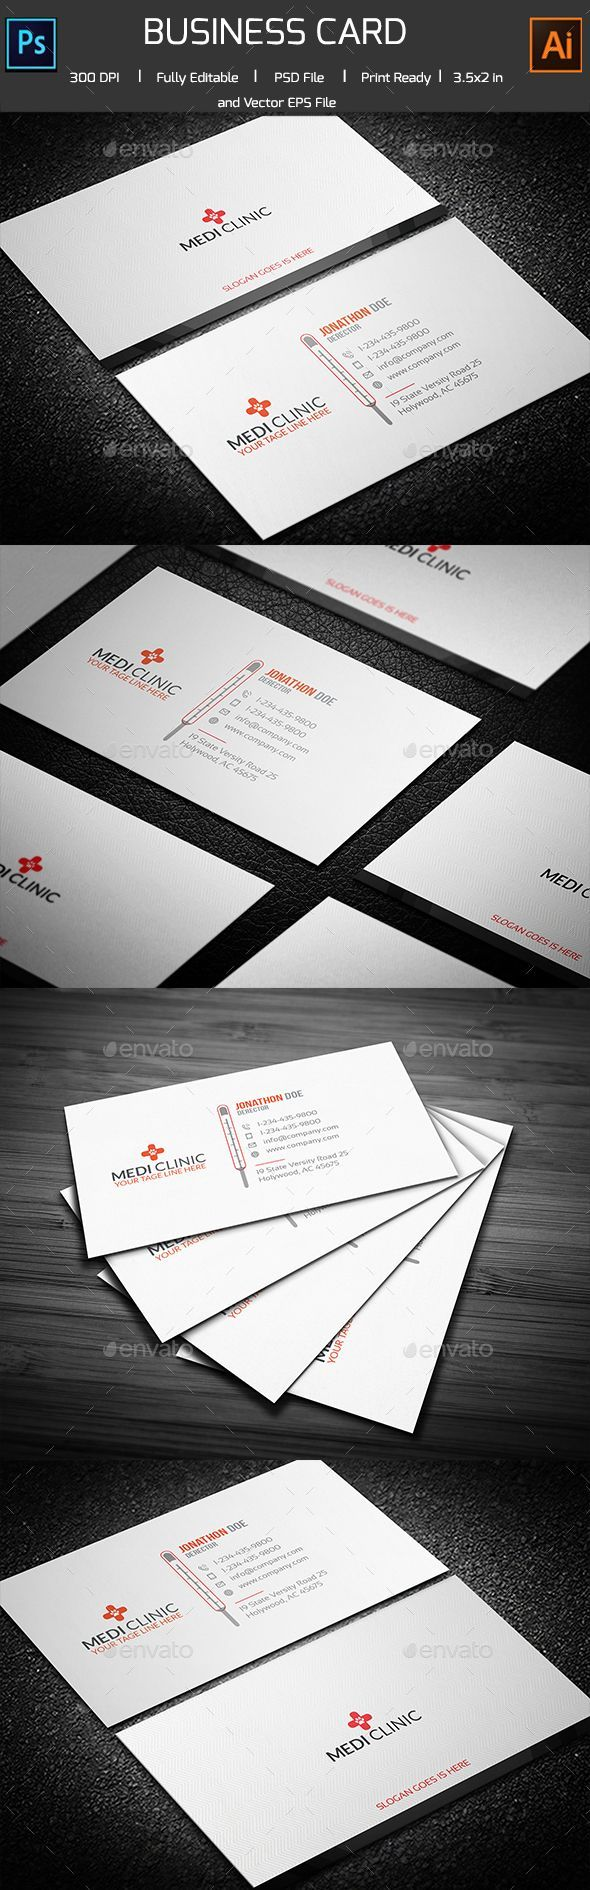 23 best business card design images on pinterest business card medicalthermal business card template download here httpgraphicriver reheart Choice Image